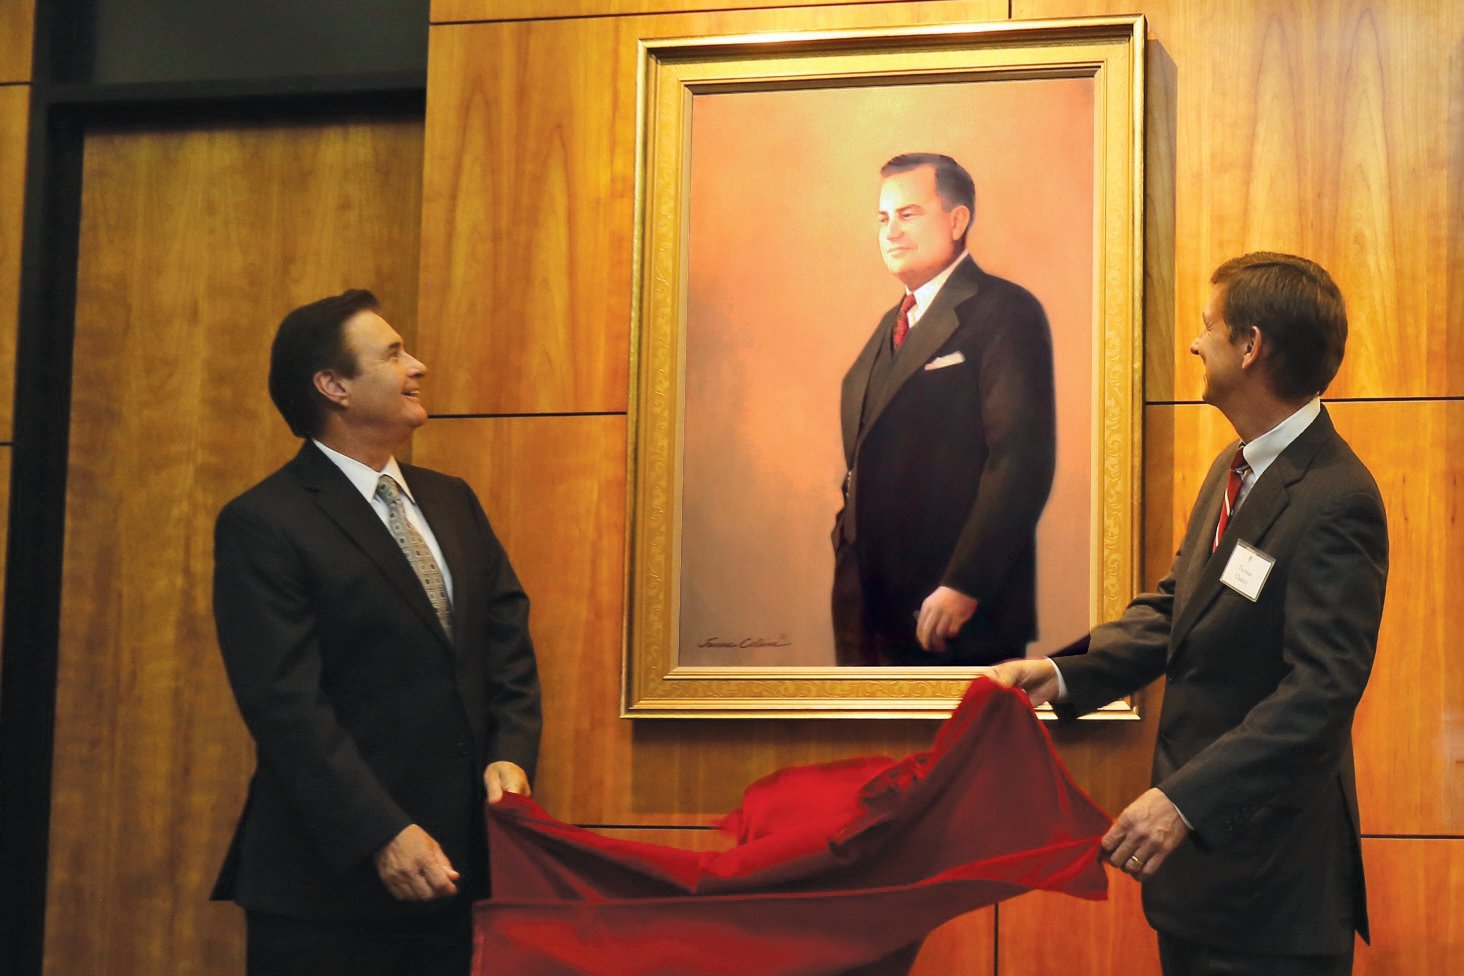 John Bloom, left, vice president for University Advancement, and Thomas Chance, UL Lafayette Foundation board of trustees member, present a portrait of Lether Frazar, the University's second president. Portraits of the University's five former preside